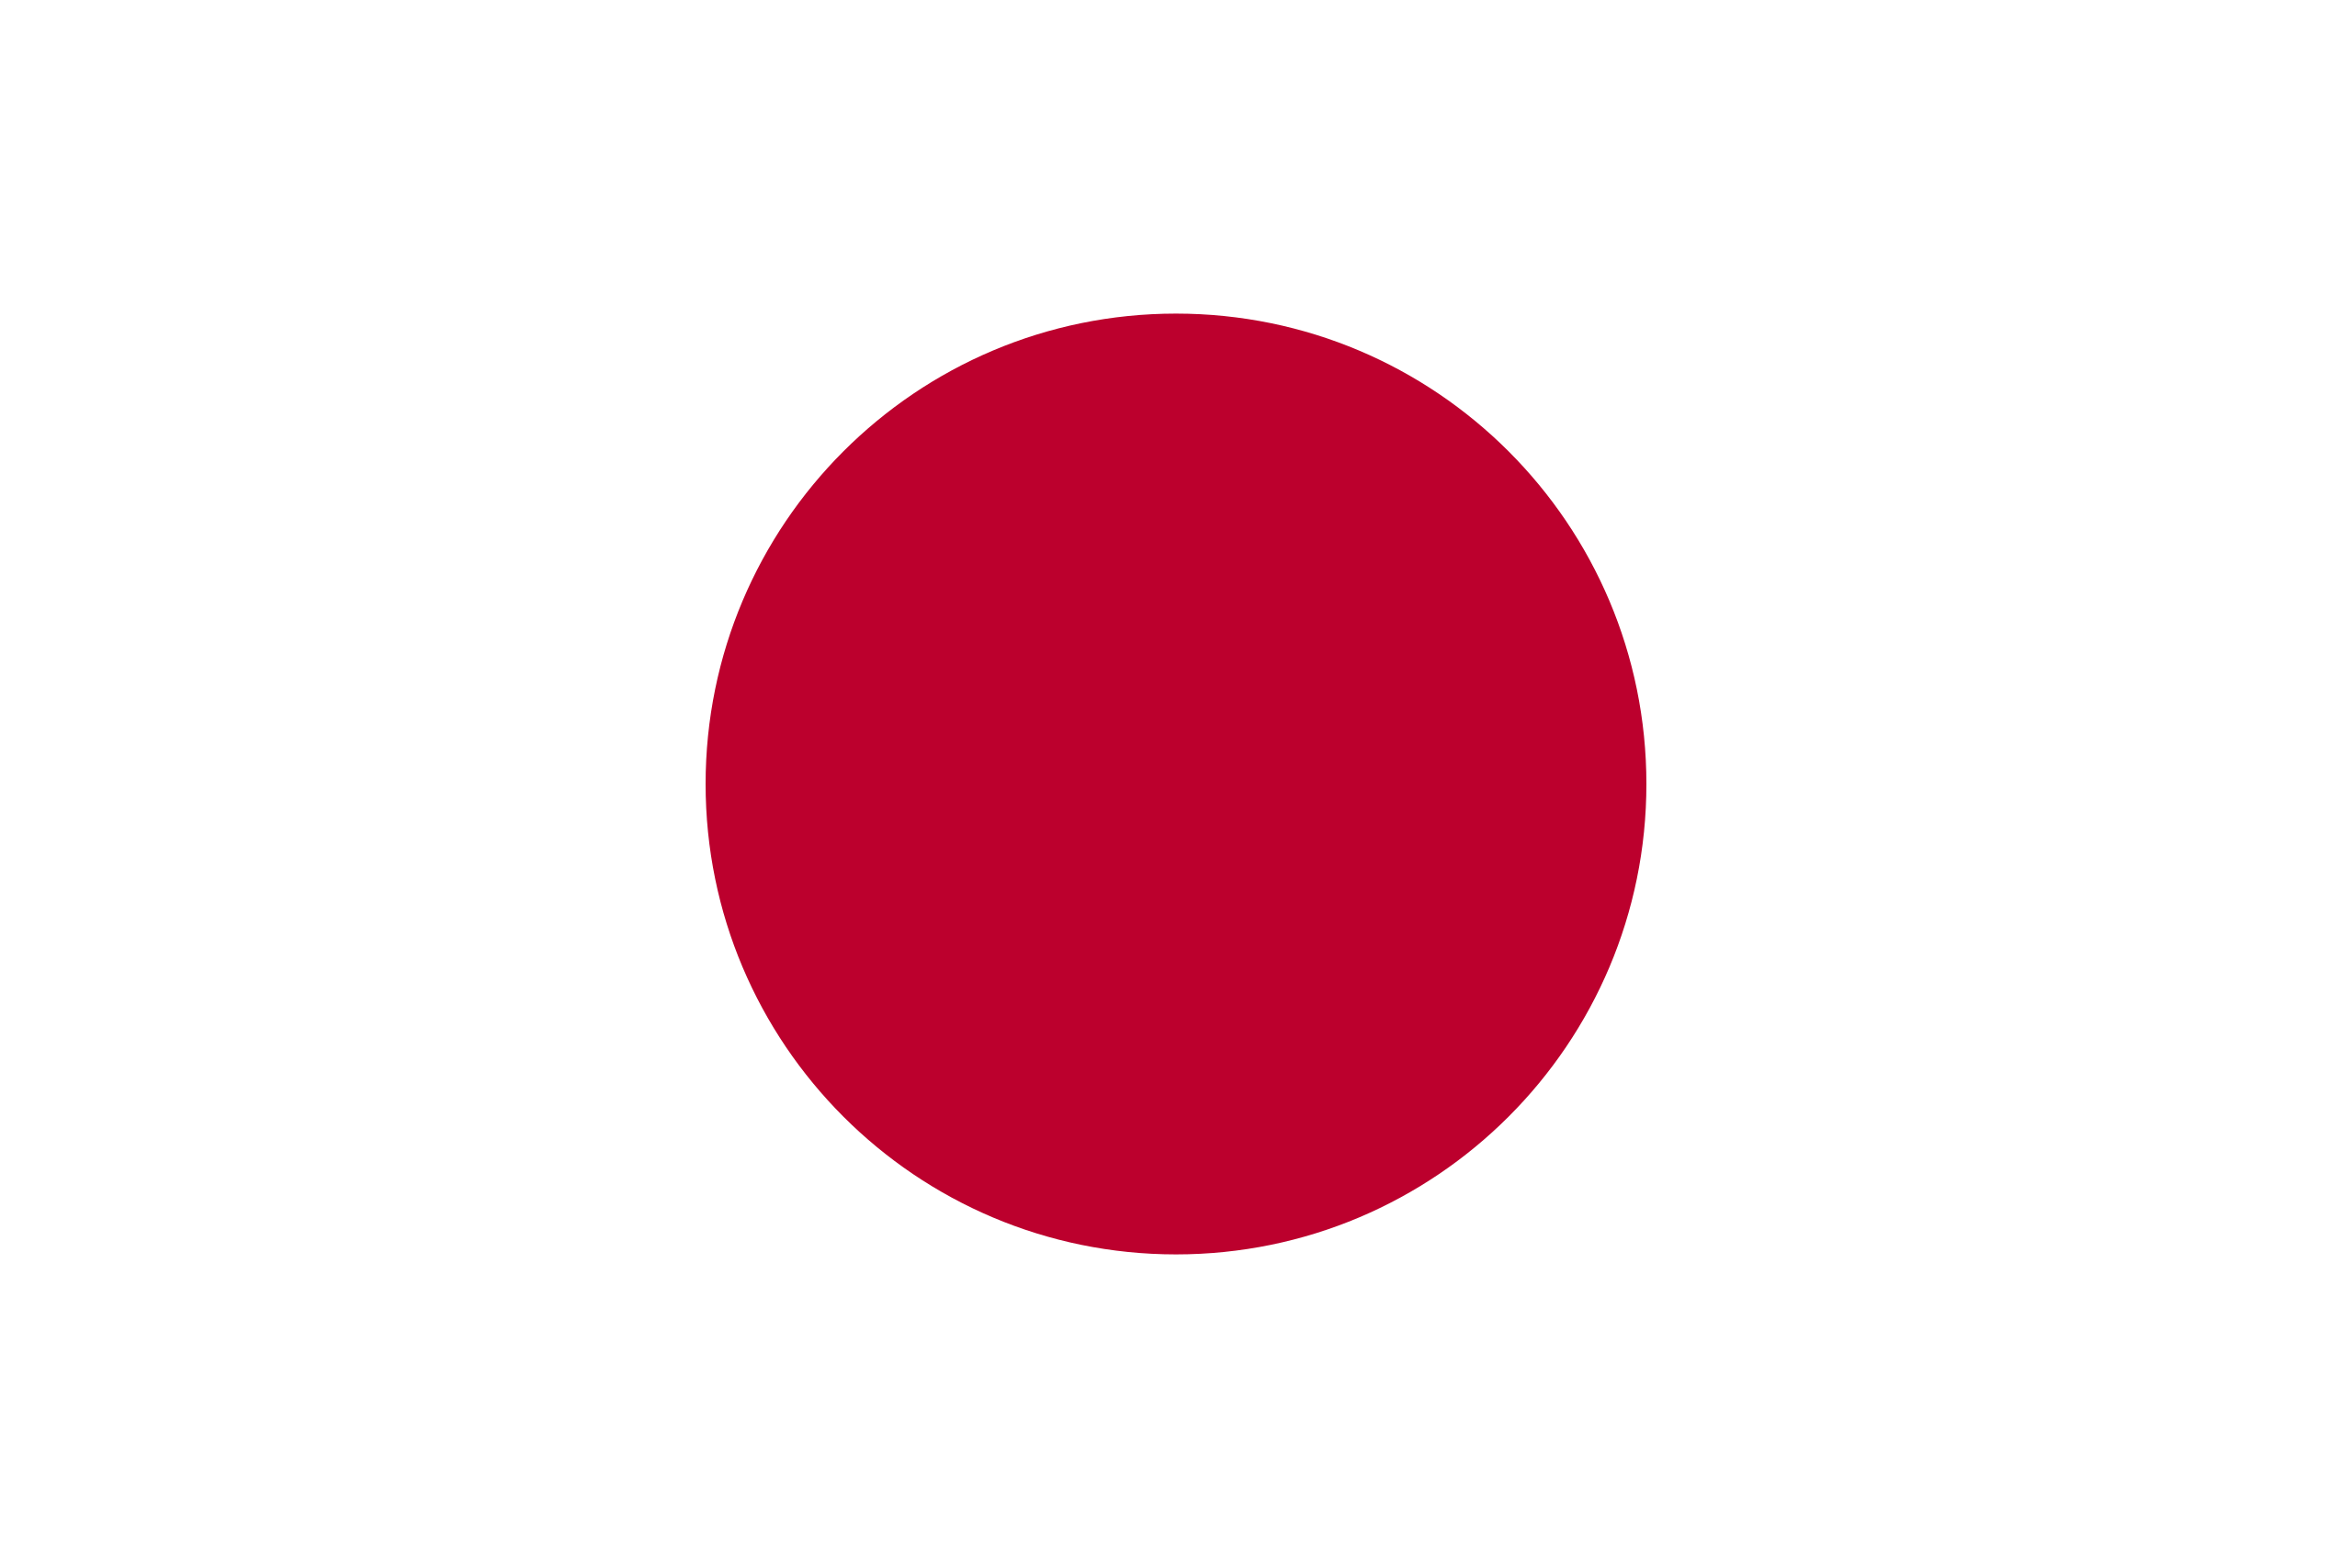 Flag of Japan